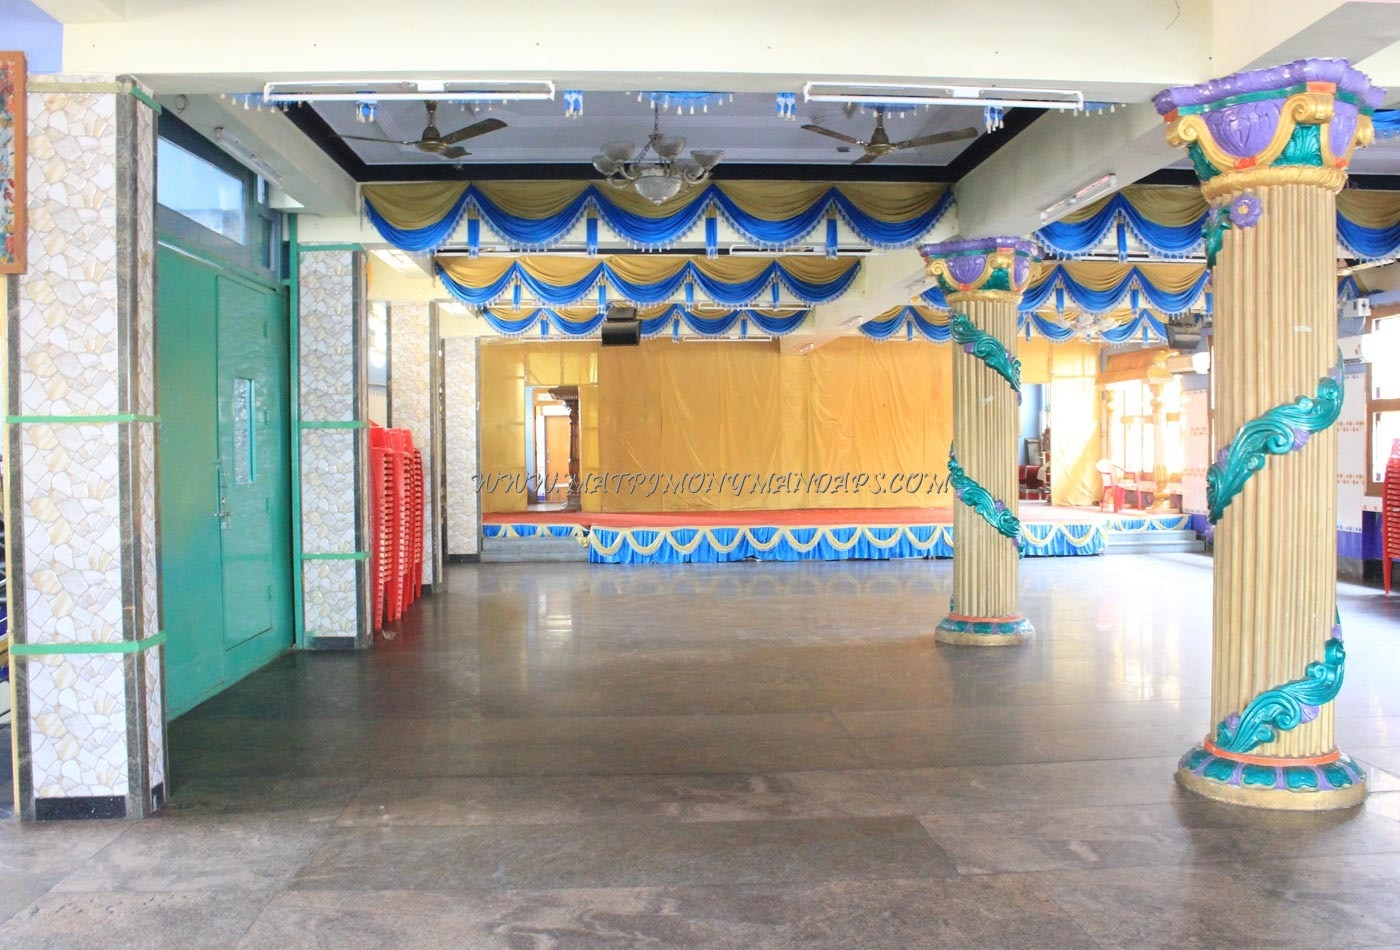 Find the availability of the VKK Mahal  (A/C) in Perambur, Chennai and avail special offers